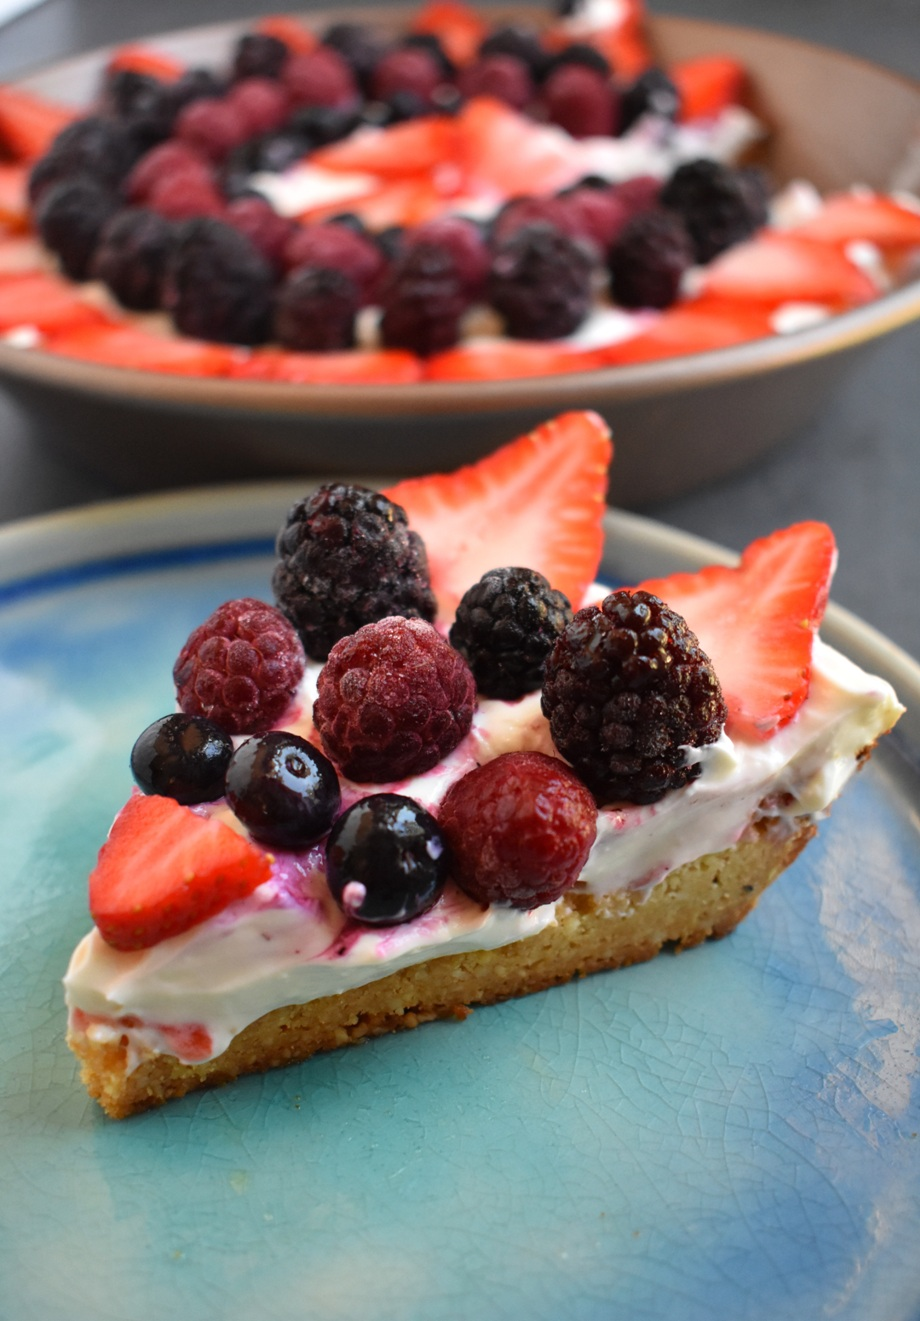 Berry Cheesecake Tart featured a creamy Greek yogurt cheesecake filling, a 3-ingredient almond crust and a variety of fresh berries for the perfect, healthier dessert ready in about 1/2 an hour! www.nutritionistreviews.com